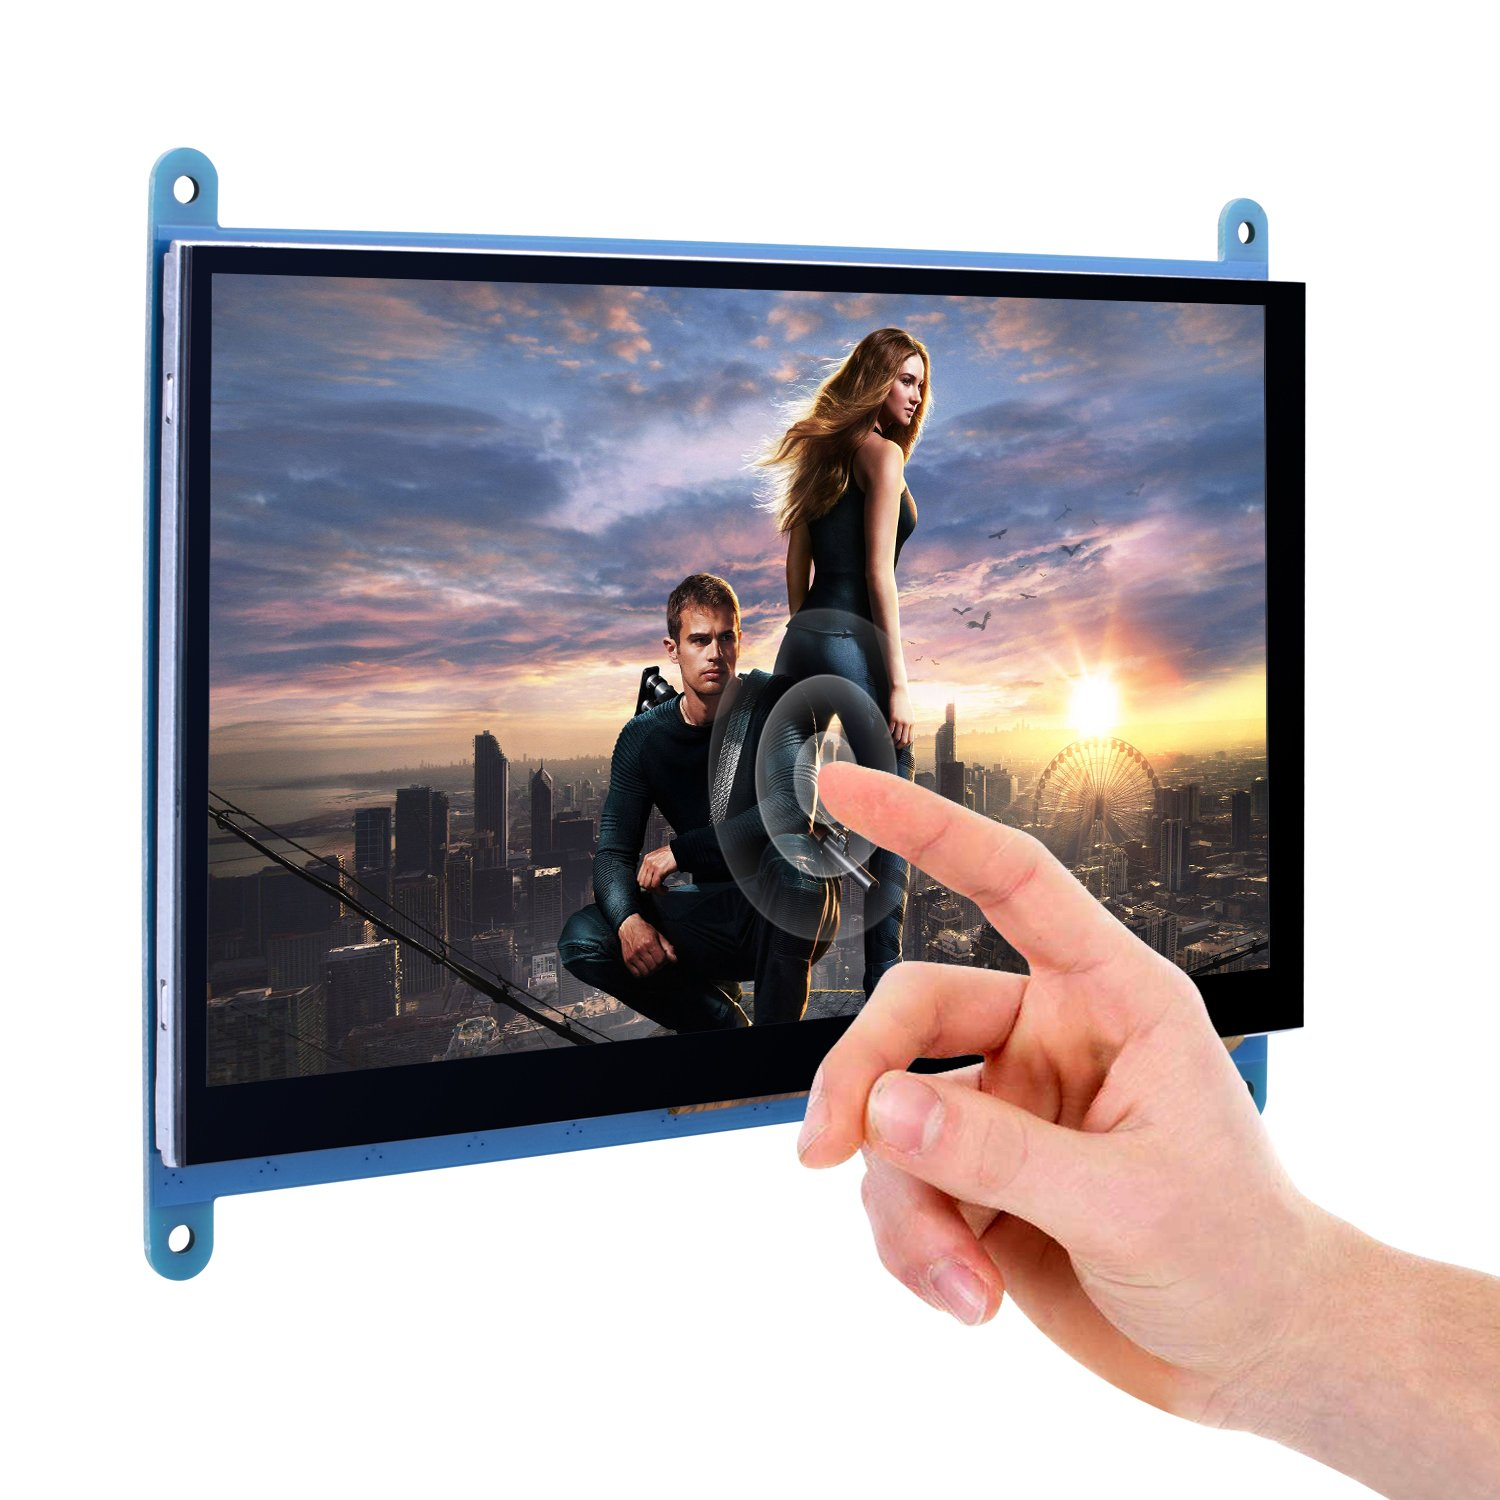 Kuman 7 Inch Capacitive Touch Screen TFT LCD Display HDMI Module 800x480 for Raspberry Pi 3 2 Model B and RPi 1 B+ A BB Black PC Various Systems SC7B (7 Inch Raspberry Pi Touch Screen) by Kuman (Image #4)